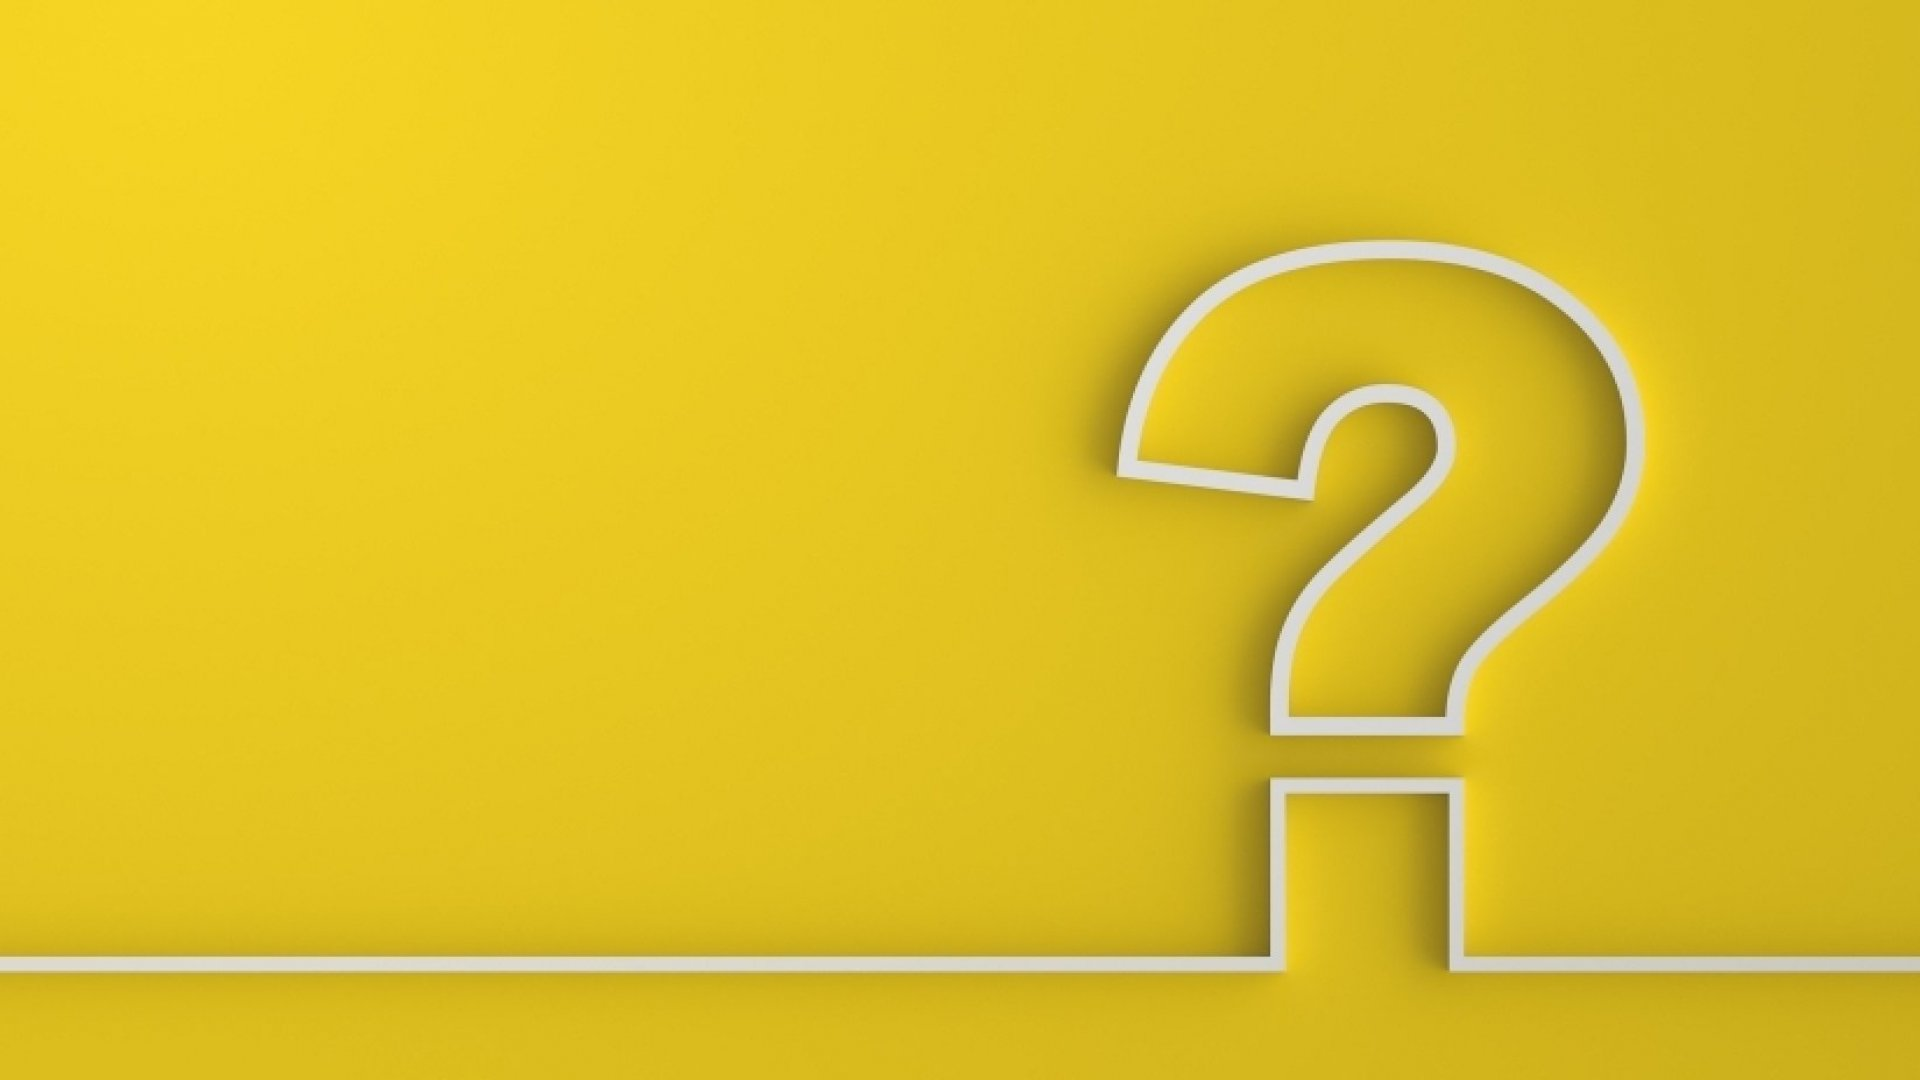 Whatever Your Role in the Company, You Should Get Used to Asking This 1 Question